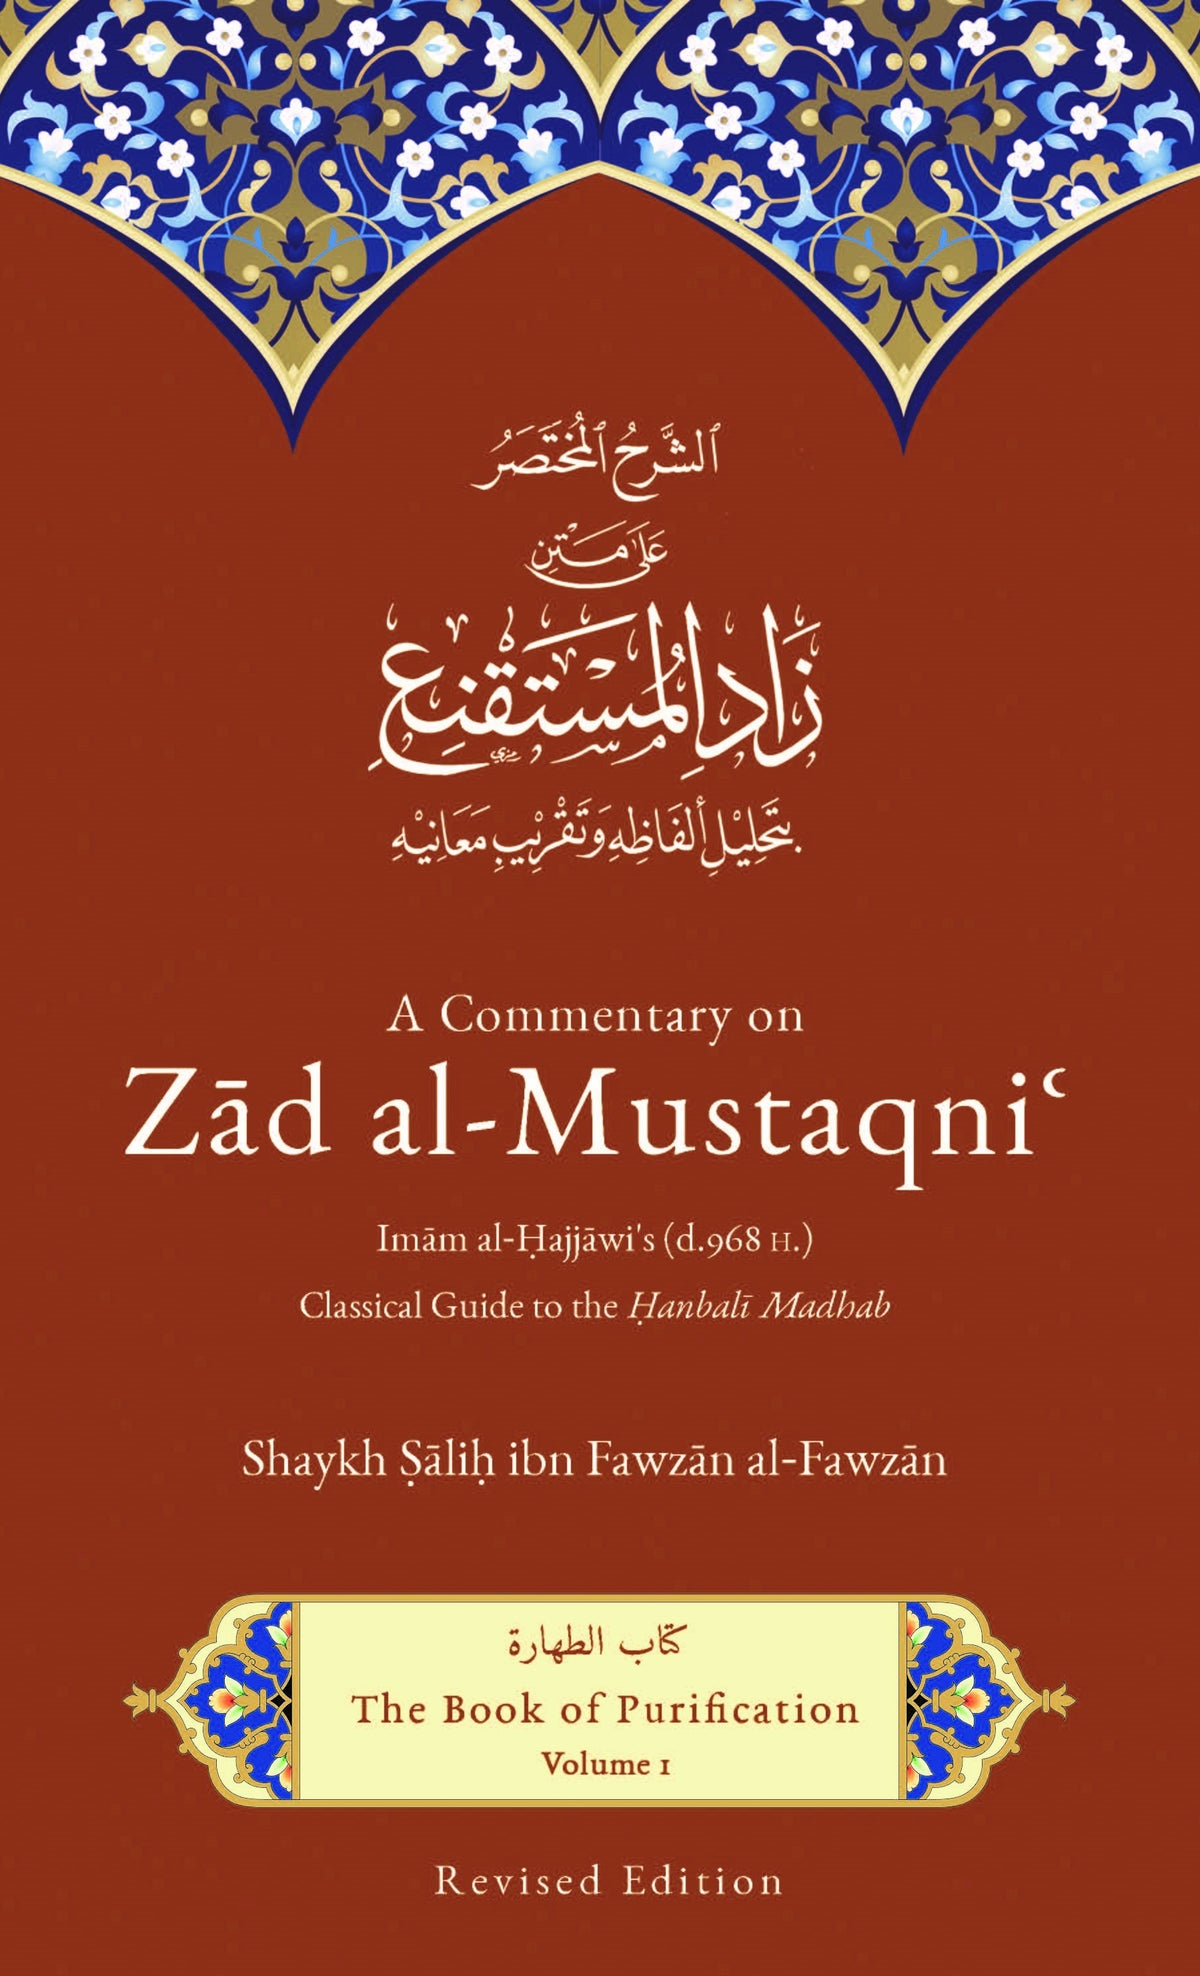 Image of A Commentary on Zad al-Mustaqni: Volume 1: The Book of Purification